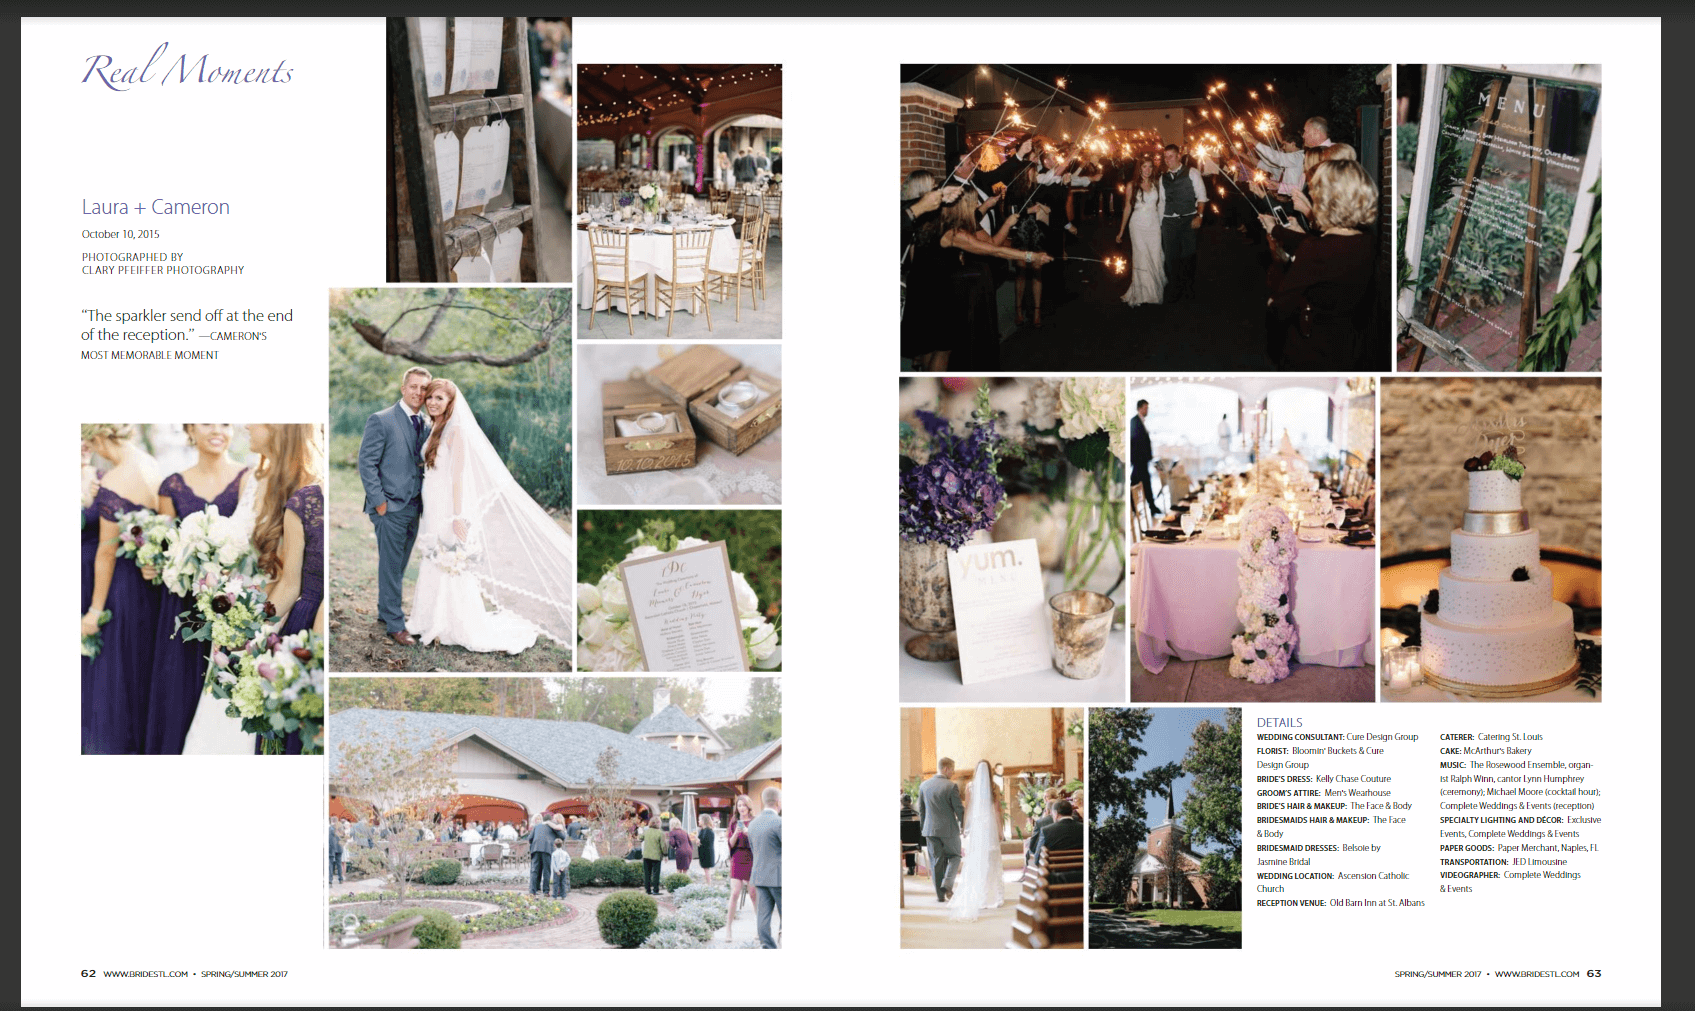 Stl Bride Magazine Wedding Planning And Design 2 Page Feature